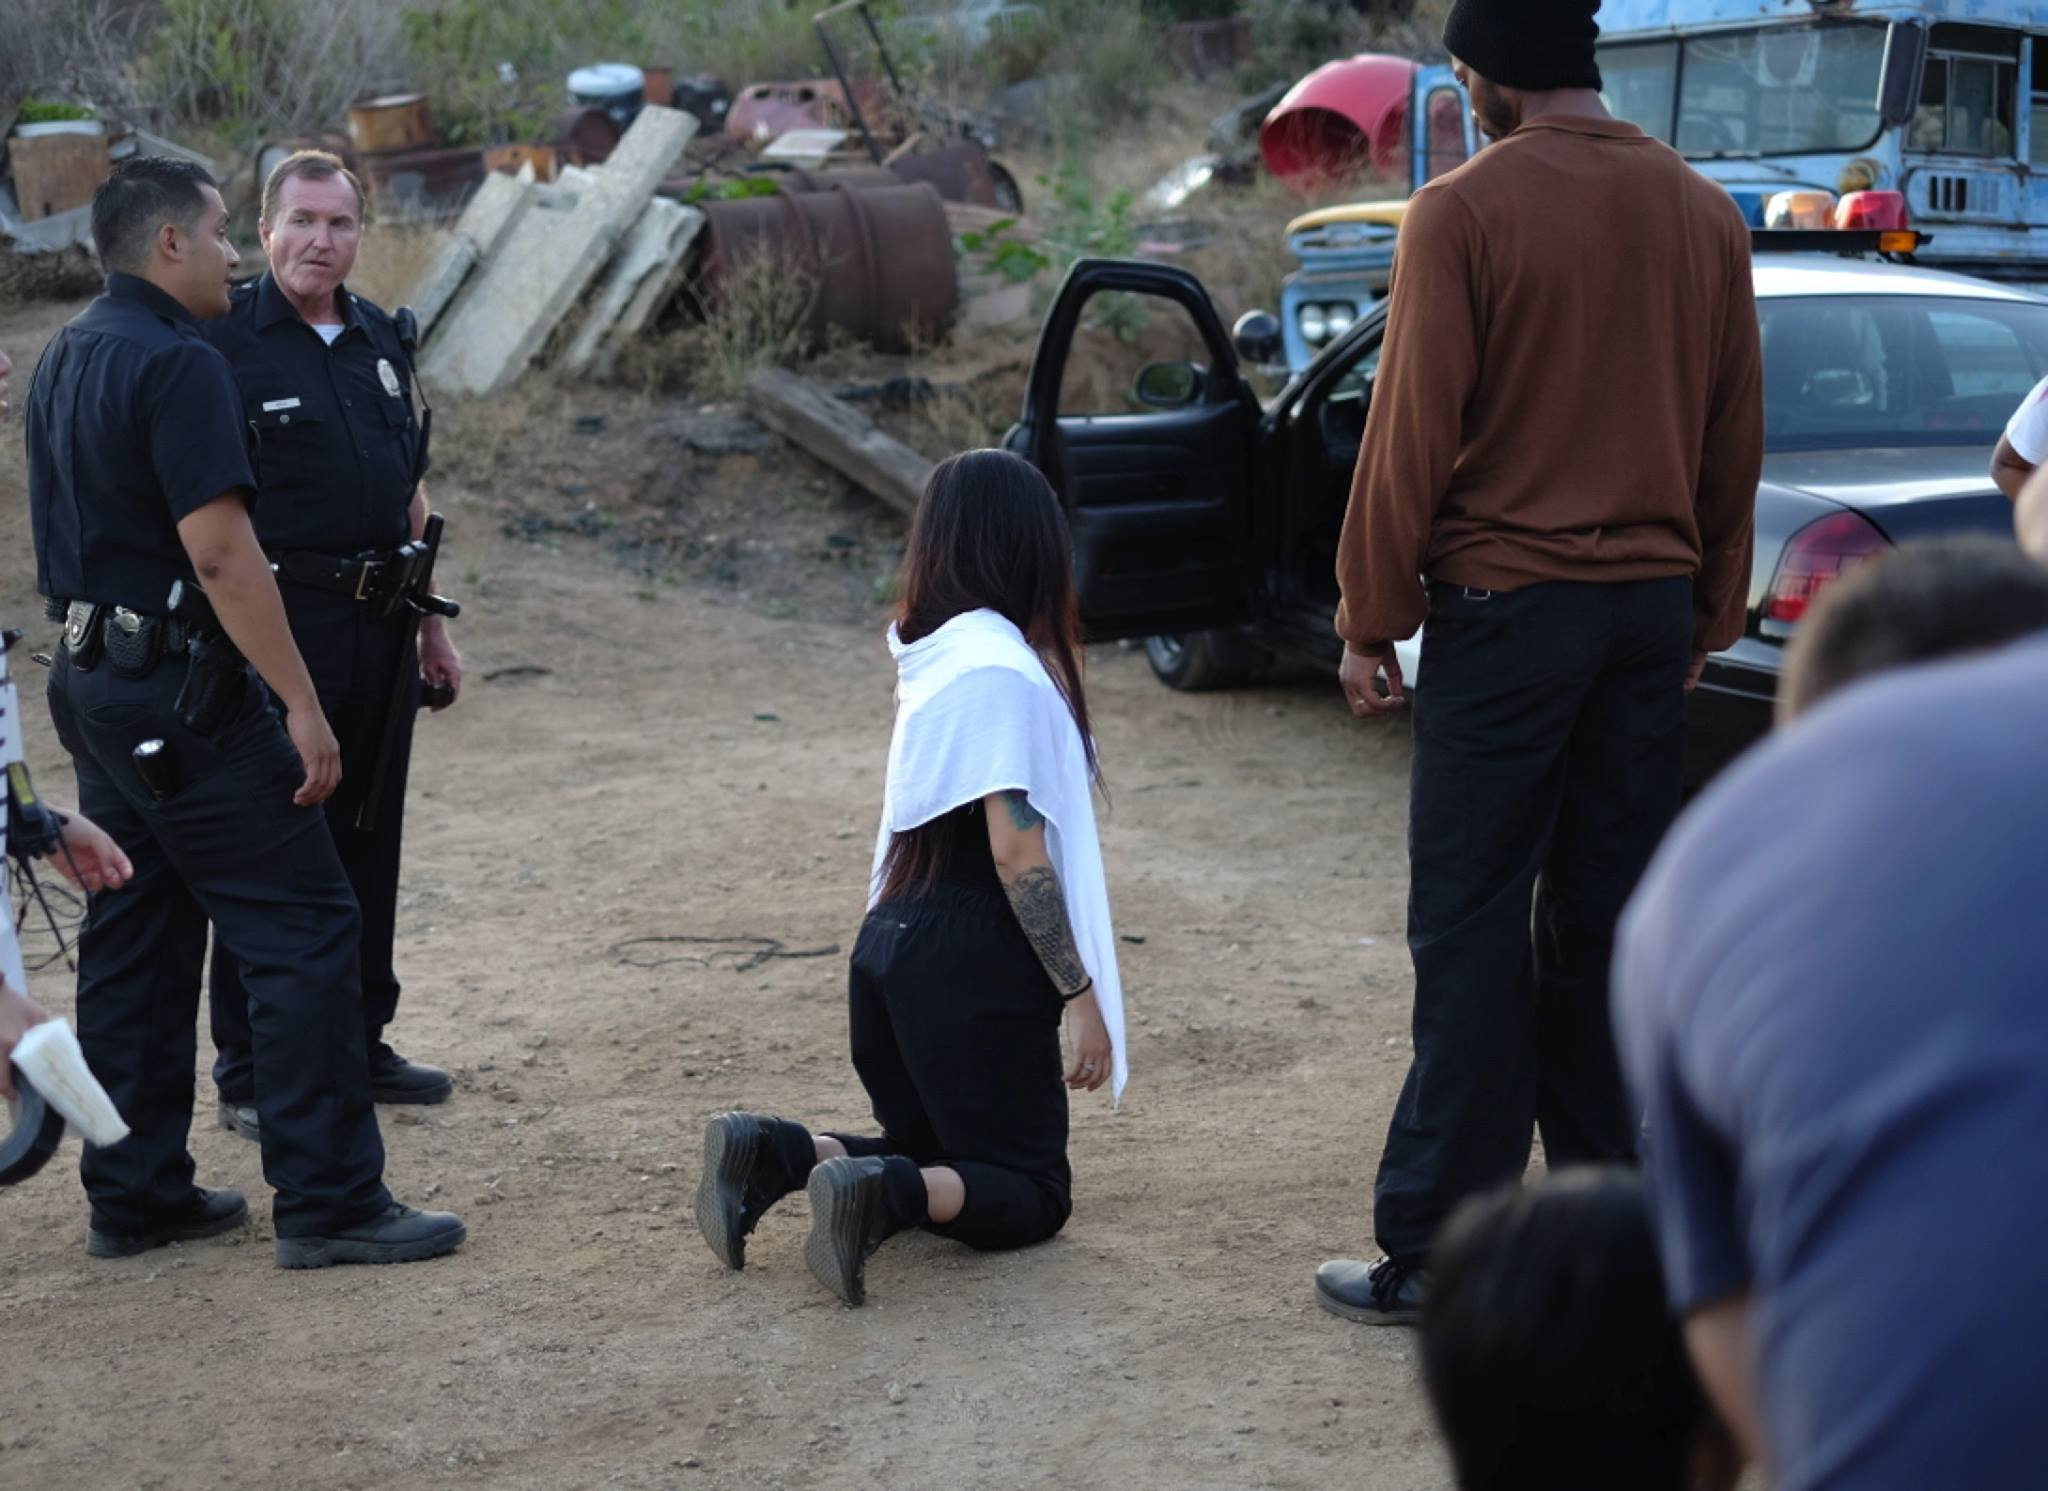 Behind the scenes- The director is putting herself on the ground to find the mark for the actor instead of letting him lie on the dirt.